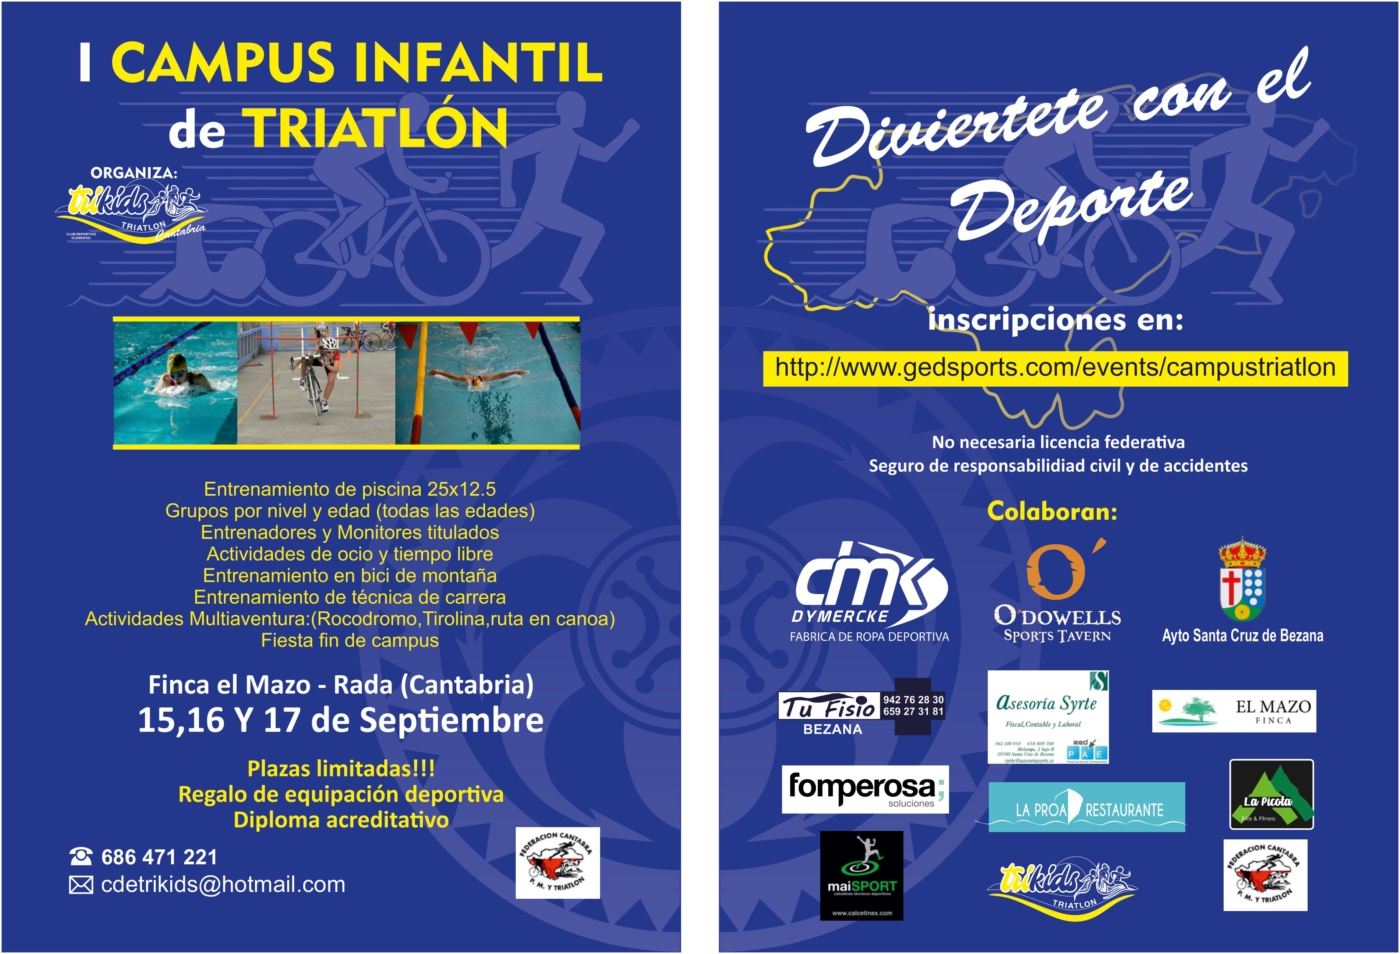 CAMPUS INFANTIL DE TRIATLON